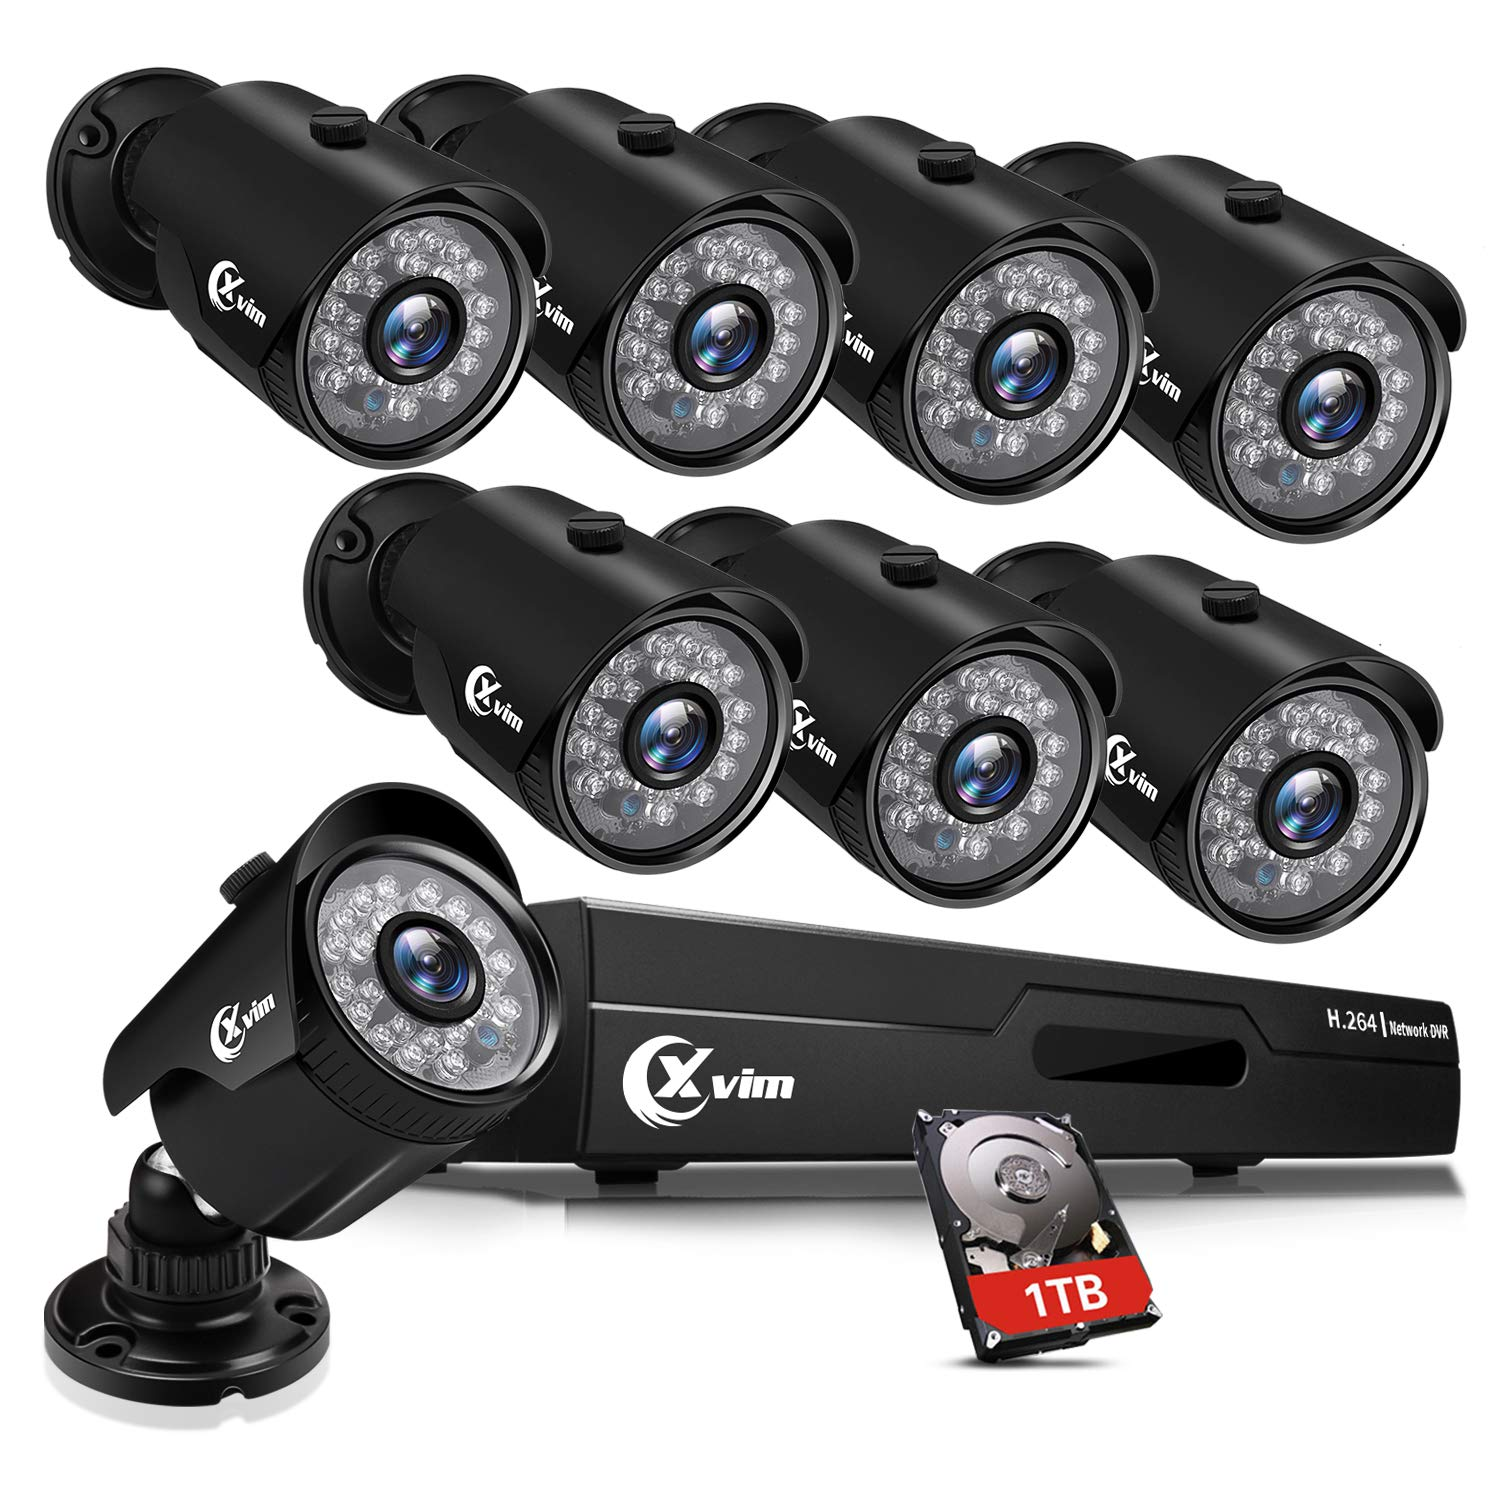 XVIM 8CH 1080P Security Camera System Outdoor with 1TB Hard Drive Pre-Install CCTV Recorder 8pcs HD 1920TVI Upgrade Outdoor Home Surveillance Cameras with Night Vision Easy Remote Access Motion Alert